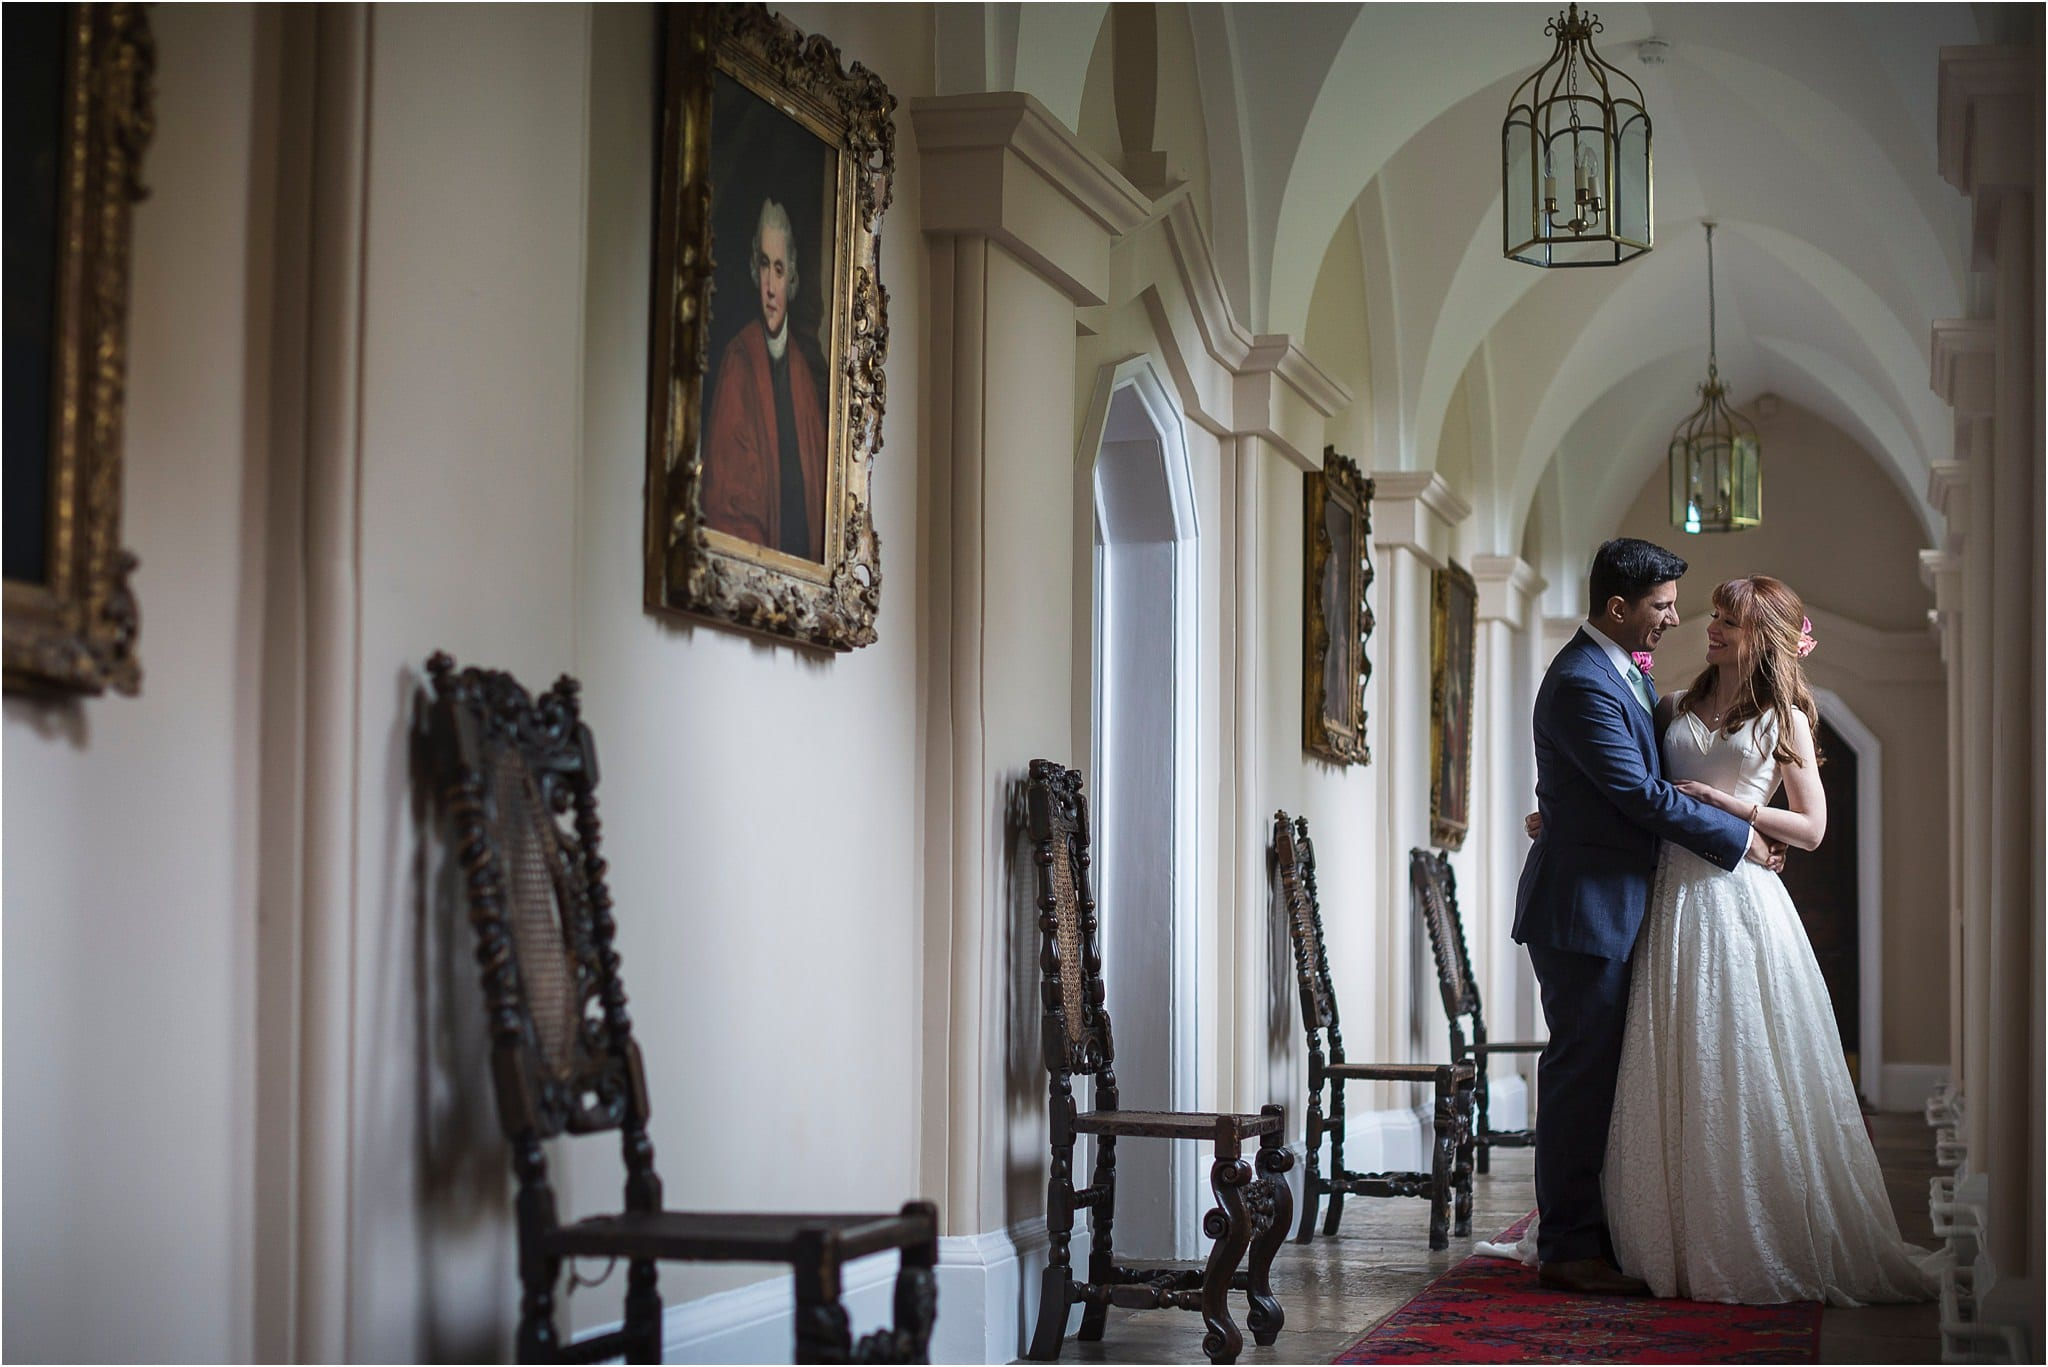 A couple coming together for a photograph, down a corridor with old paintings in. Image by S2 Images, Hampden House Wedding Photographer